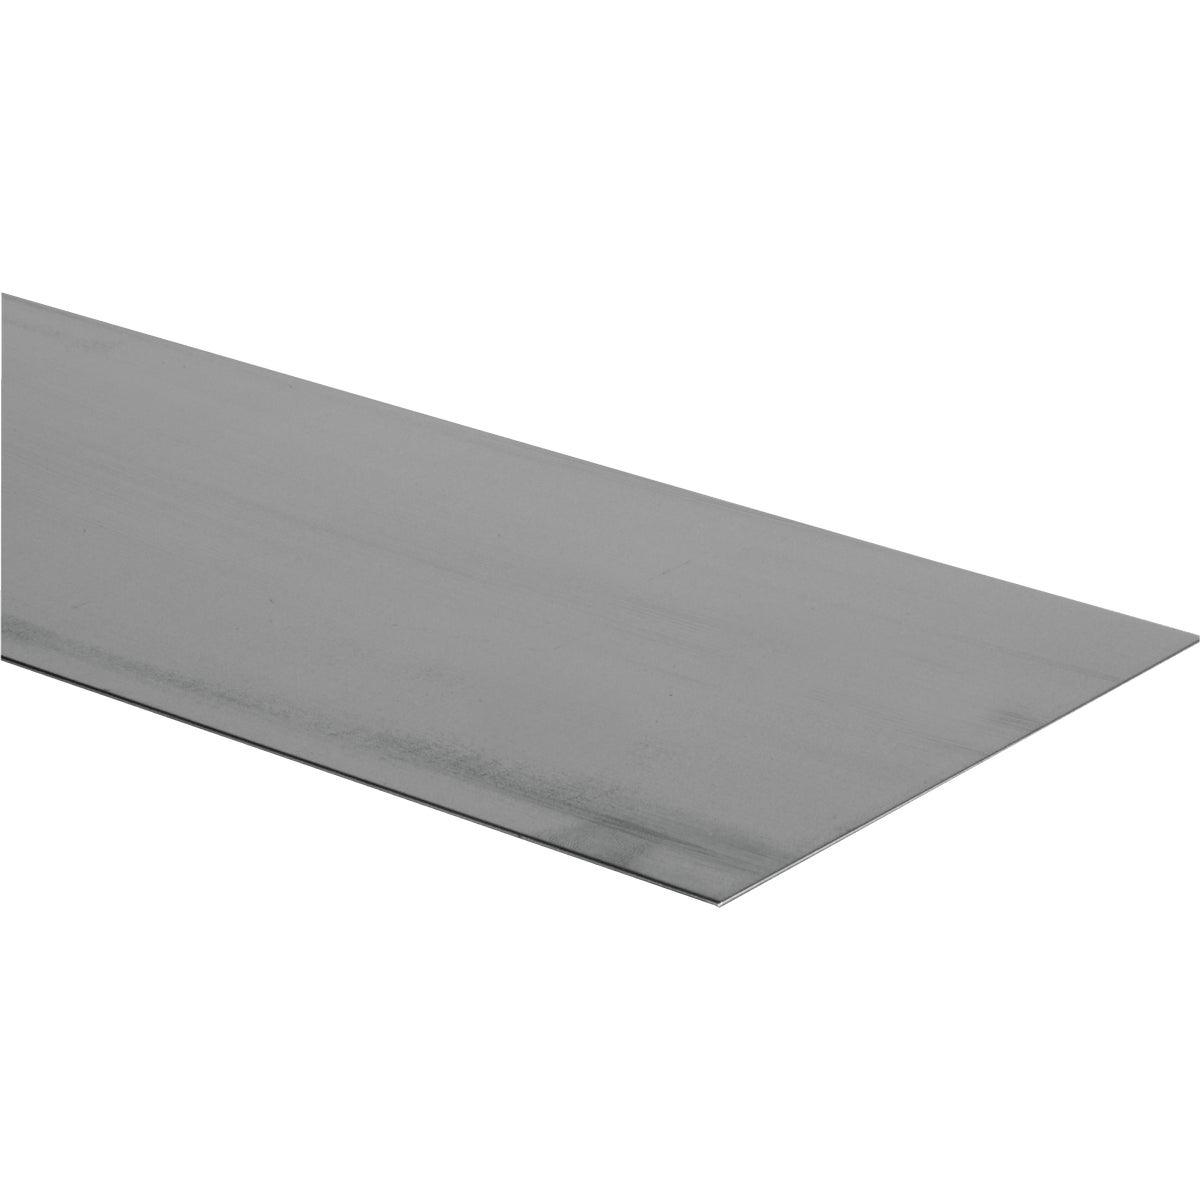 24X24 PS SHEET METAL - N301564 by National Mfg Co